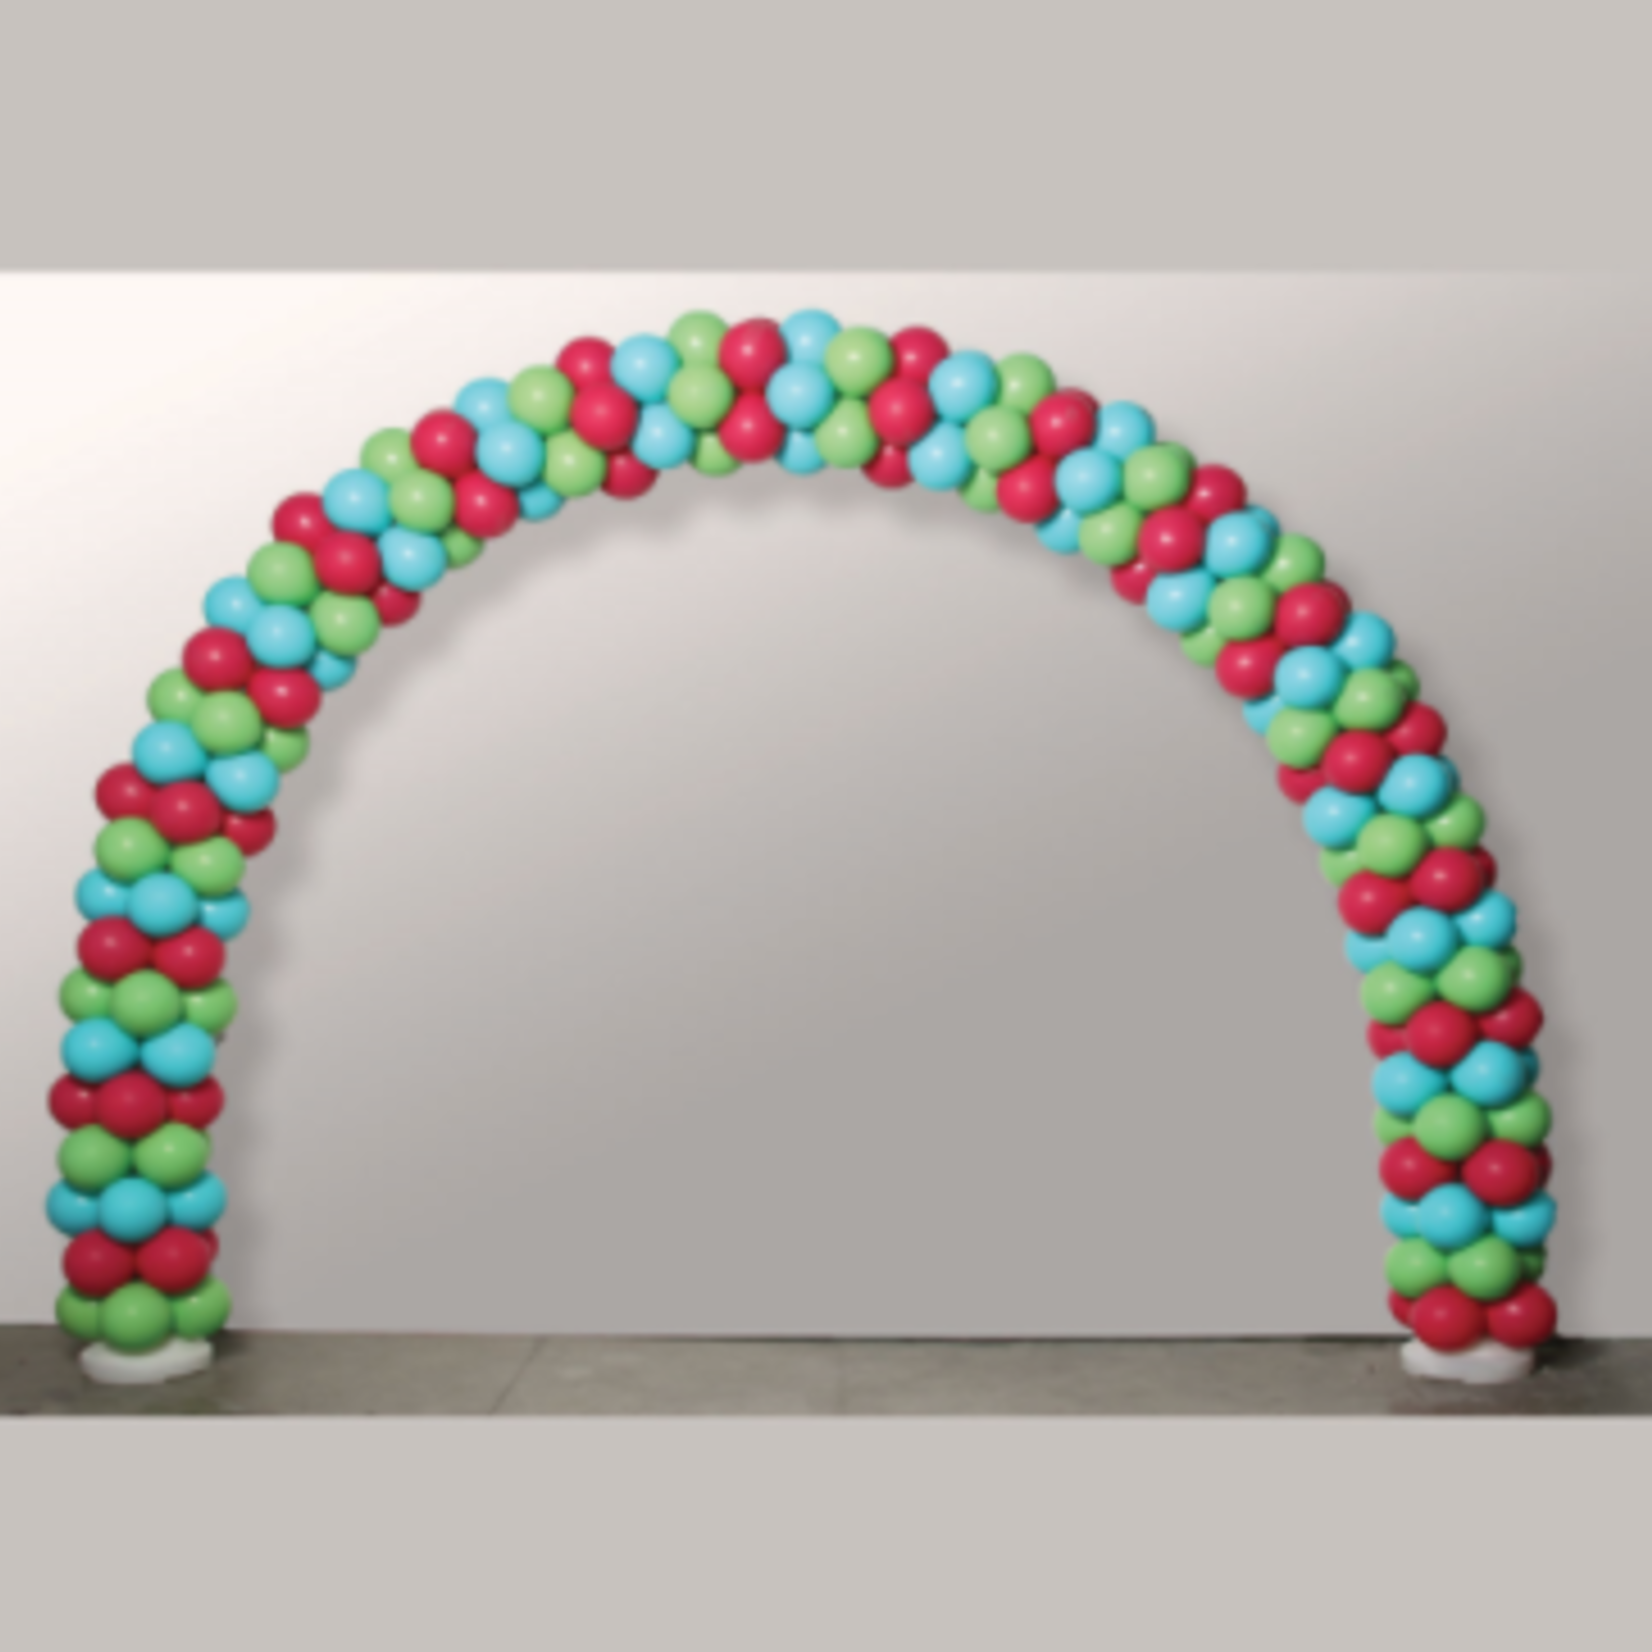 12' WIDE X 8.5'H BALLOON ARCH STAND KIT